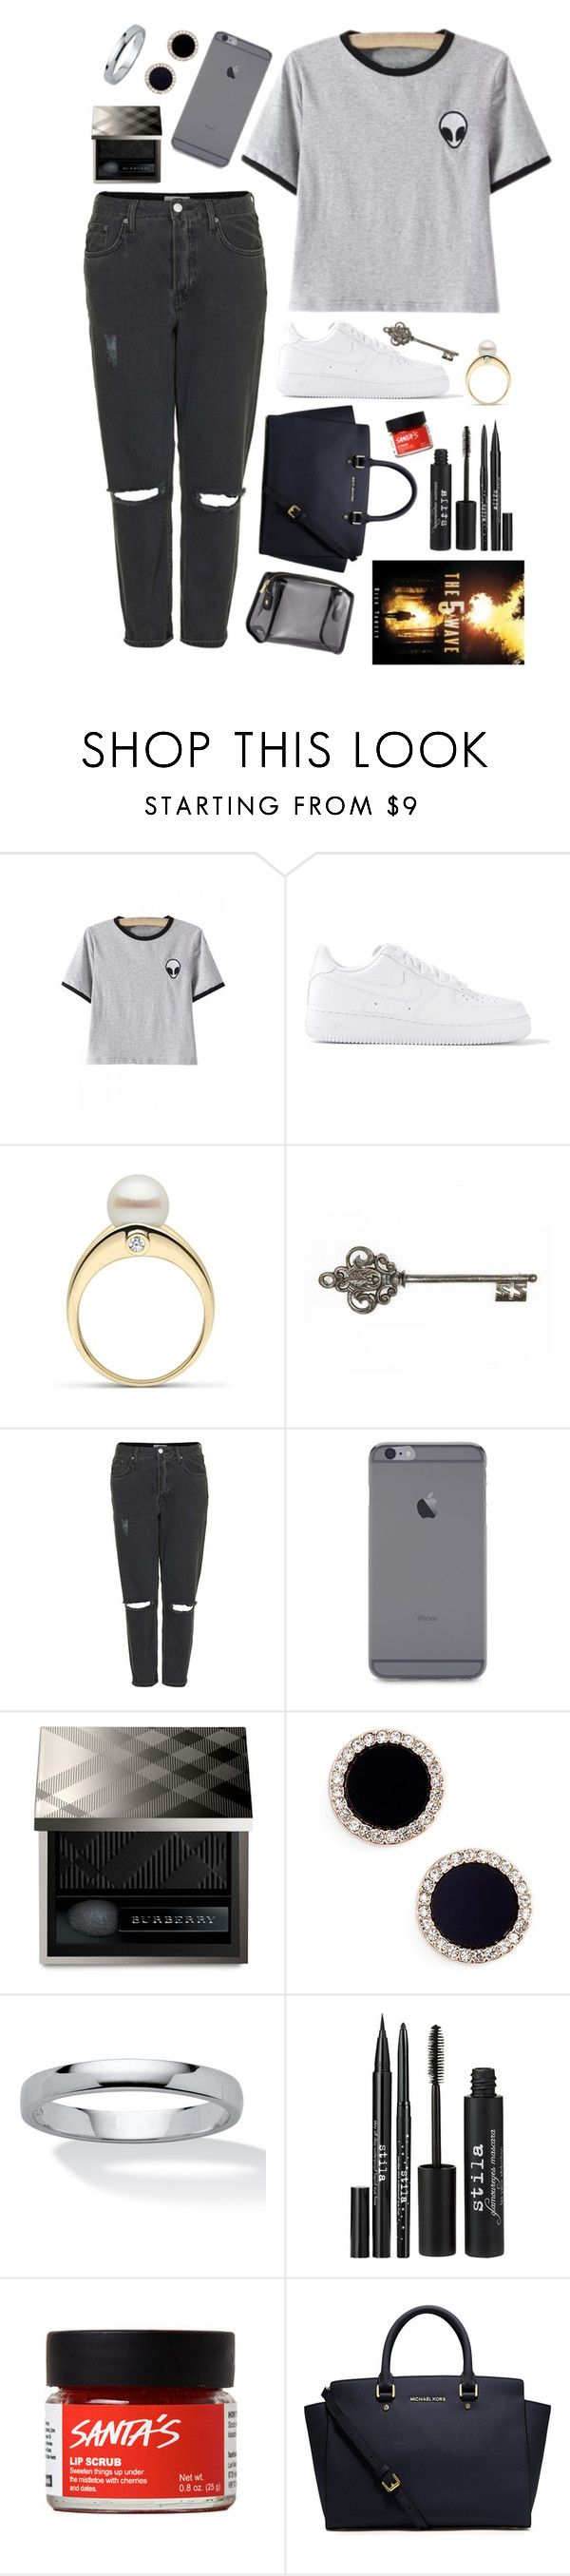 """Description"" by mrs-nick-robinson ❤ liked on Polyvore featuring NIKE, Topshop, Burberry, Kate Spade, Palm Beach Jewelry, Stila, MICHAEL Michael Kors, H&M, women's clothing and women"